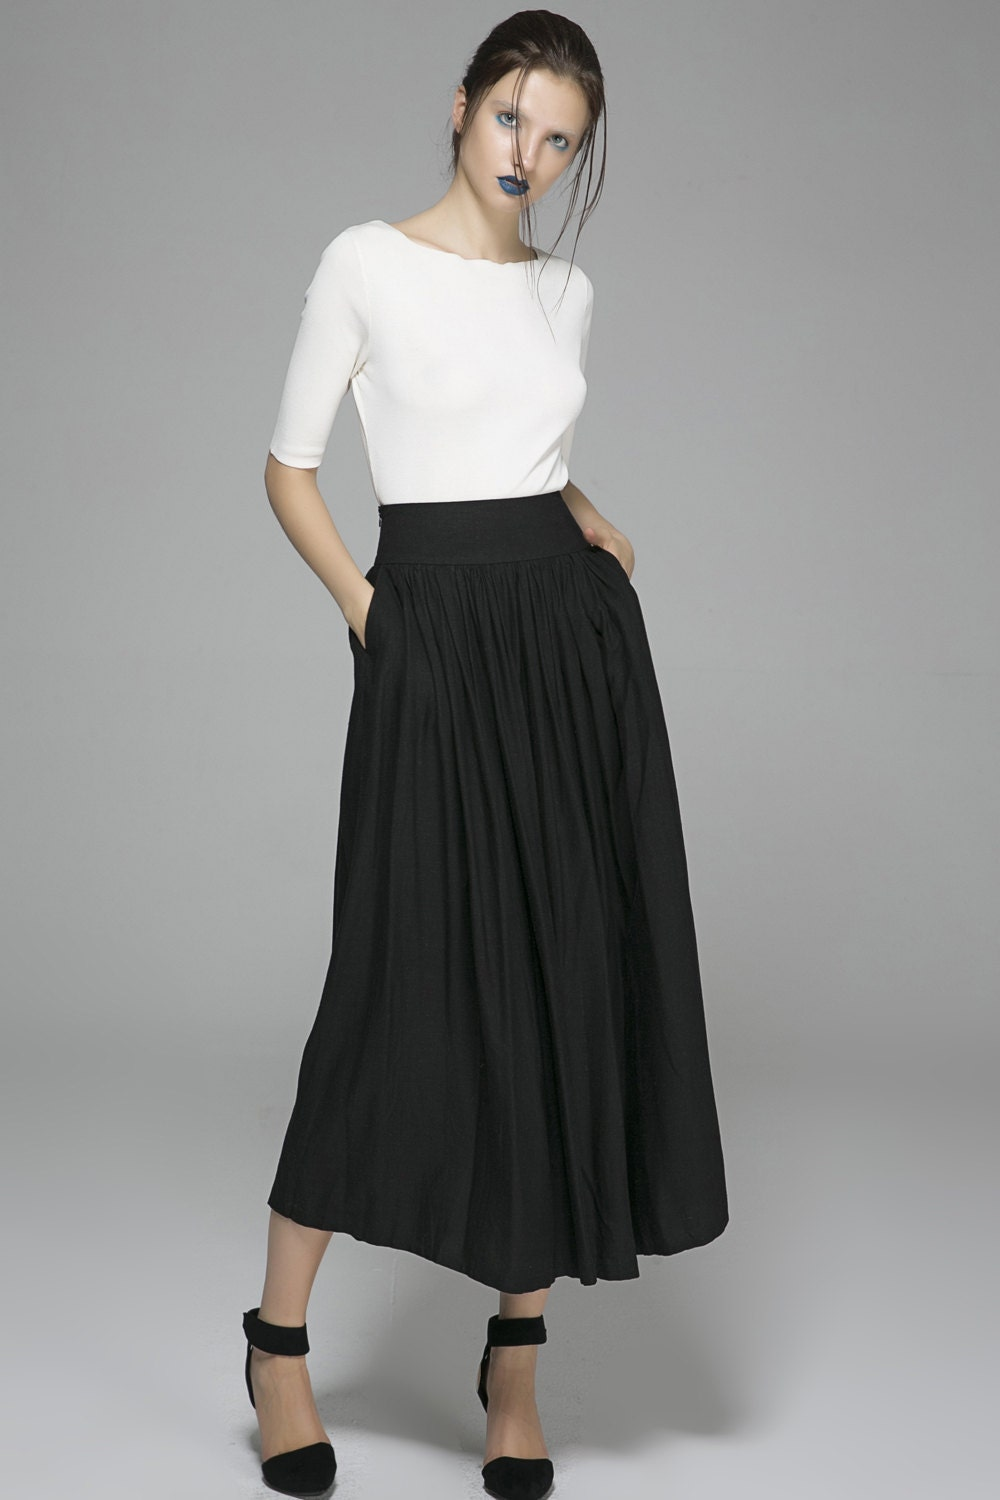 Skirts: Free Shipping on orders over $45 at hitseparatingfiletransfer.tk - Your Online Skirts Store! Get 5% in rewards with Club O! Catalog Classics Women's Black & White Tiered Eyelet Skirt - Mixed Patterns Maxi. 1 Review. SALE. Women's Patchwork Black And White Maxi Skirt - Elastic Waist - 36